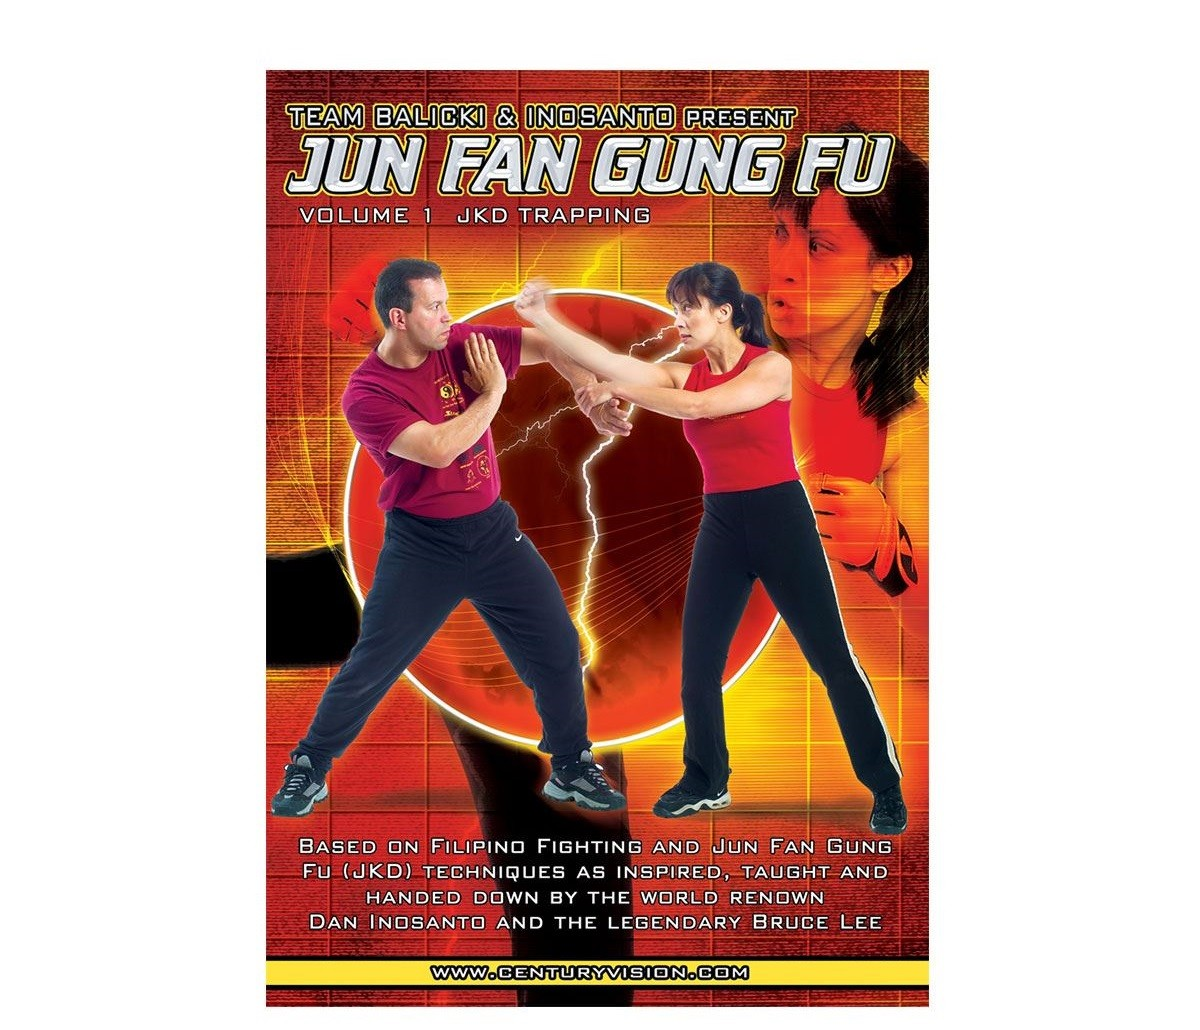 Ron Balicki and Diana Inosanto: Jun Fan Gung Fu